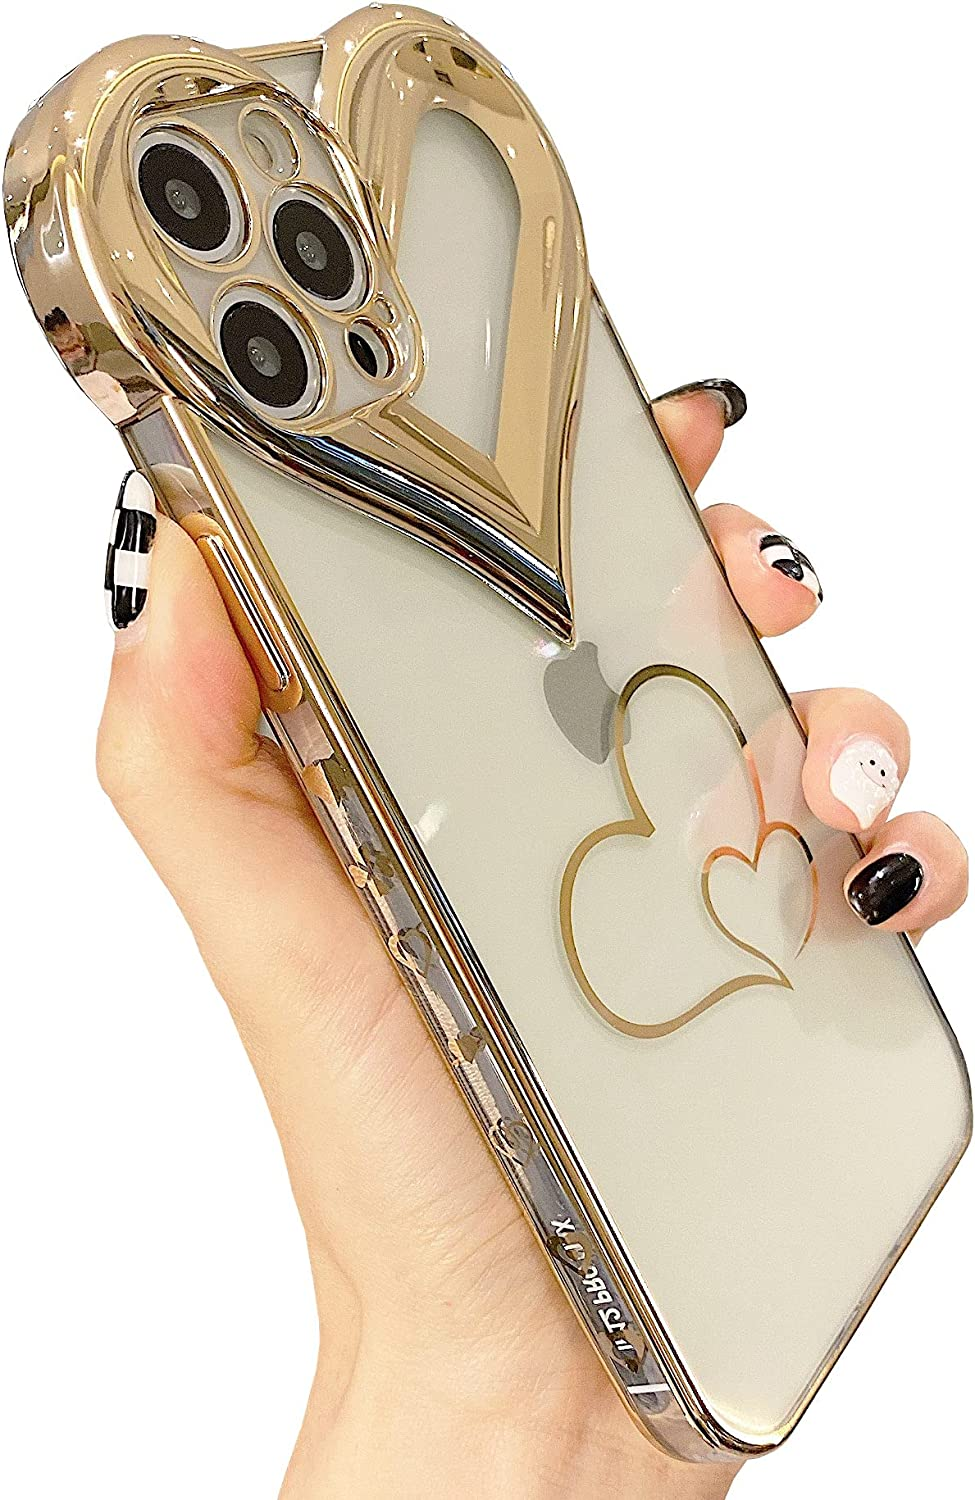 JEUTIEN Cute 3D Love Heart iPhone 12 Pro Max Case, Glitter Sparkle Gold Plated Cover for Women Girls, Slim Soft Flexible Glossy Silicone TPU Bumper Protective Phone Case 6.7